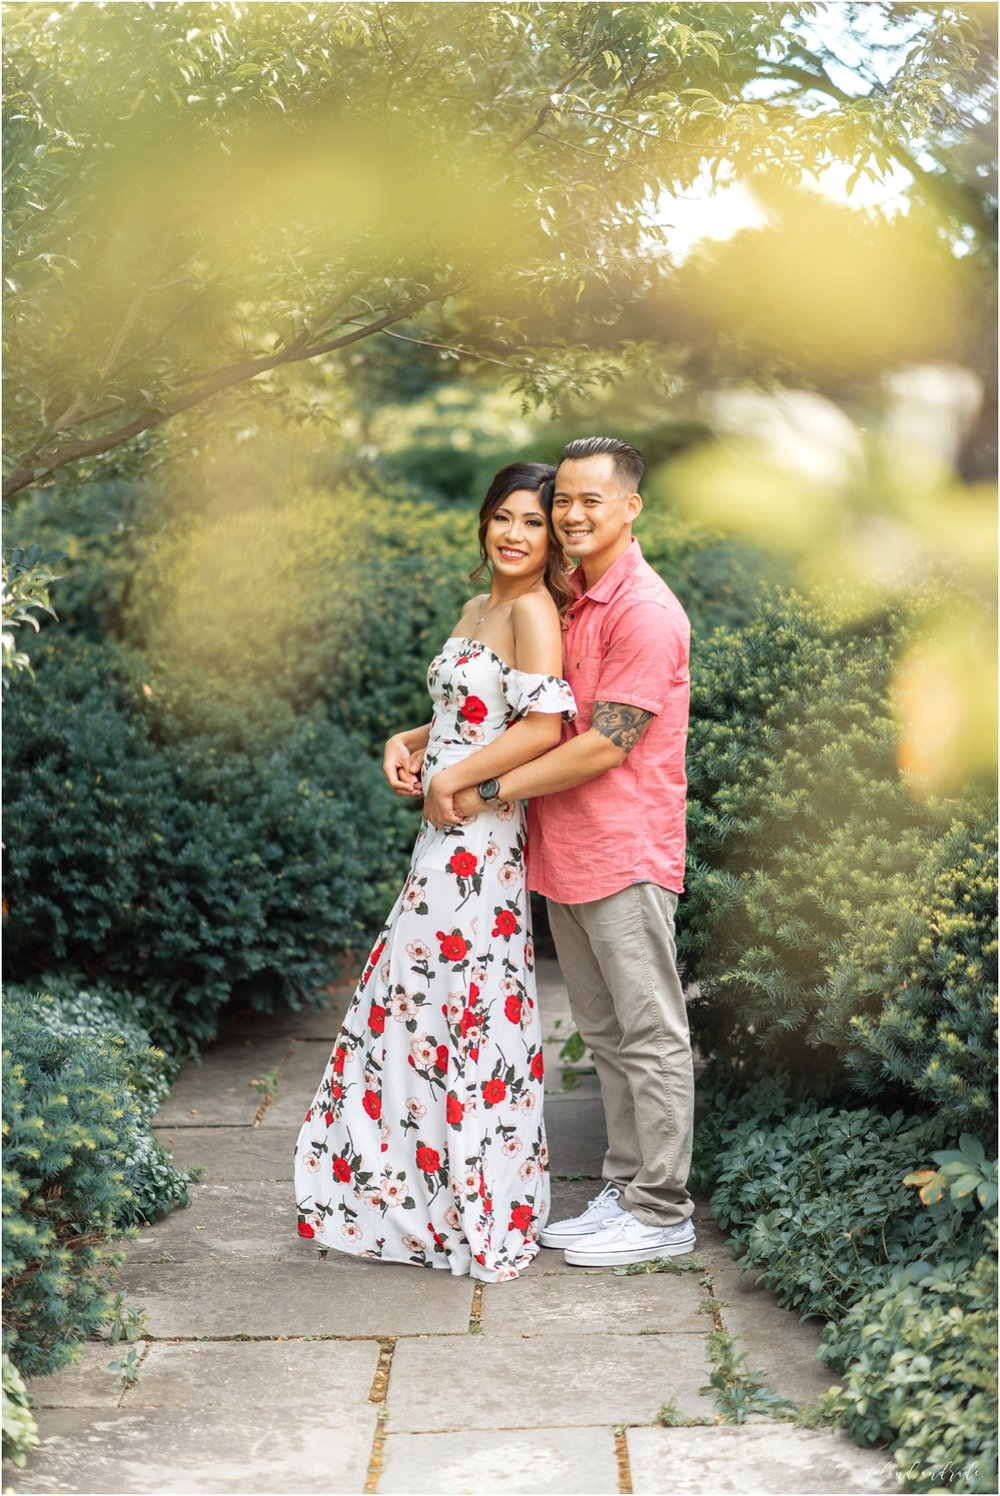 Cantigny Park Engagement Session, Wheaton Illinois Engagement Session, Chicago Wedding Photographer, Naperville Wedding Photographer, Aurora Wedding Photographer_0005.jpg